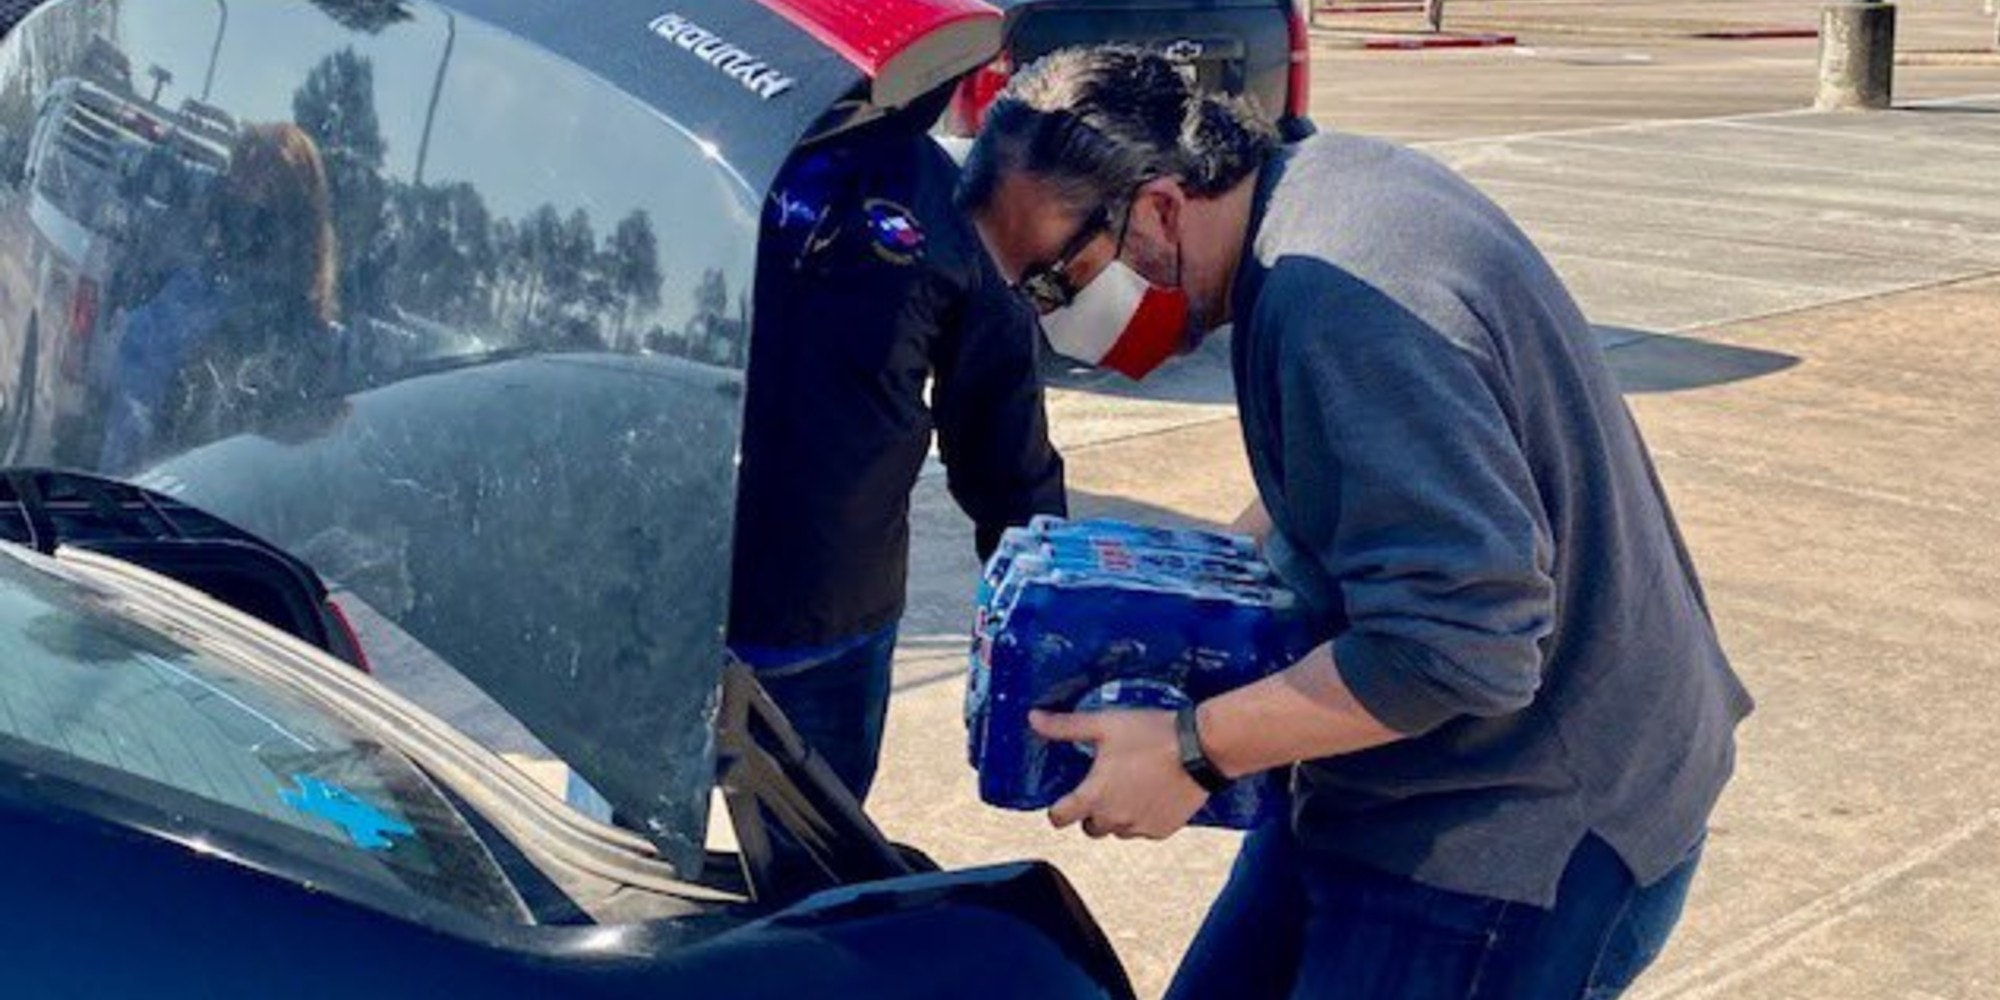 Sen. Ted Cruz (R-Tx.) loading water into a trunk